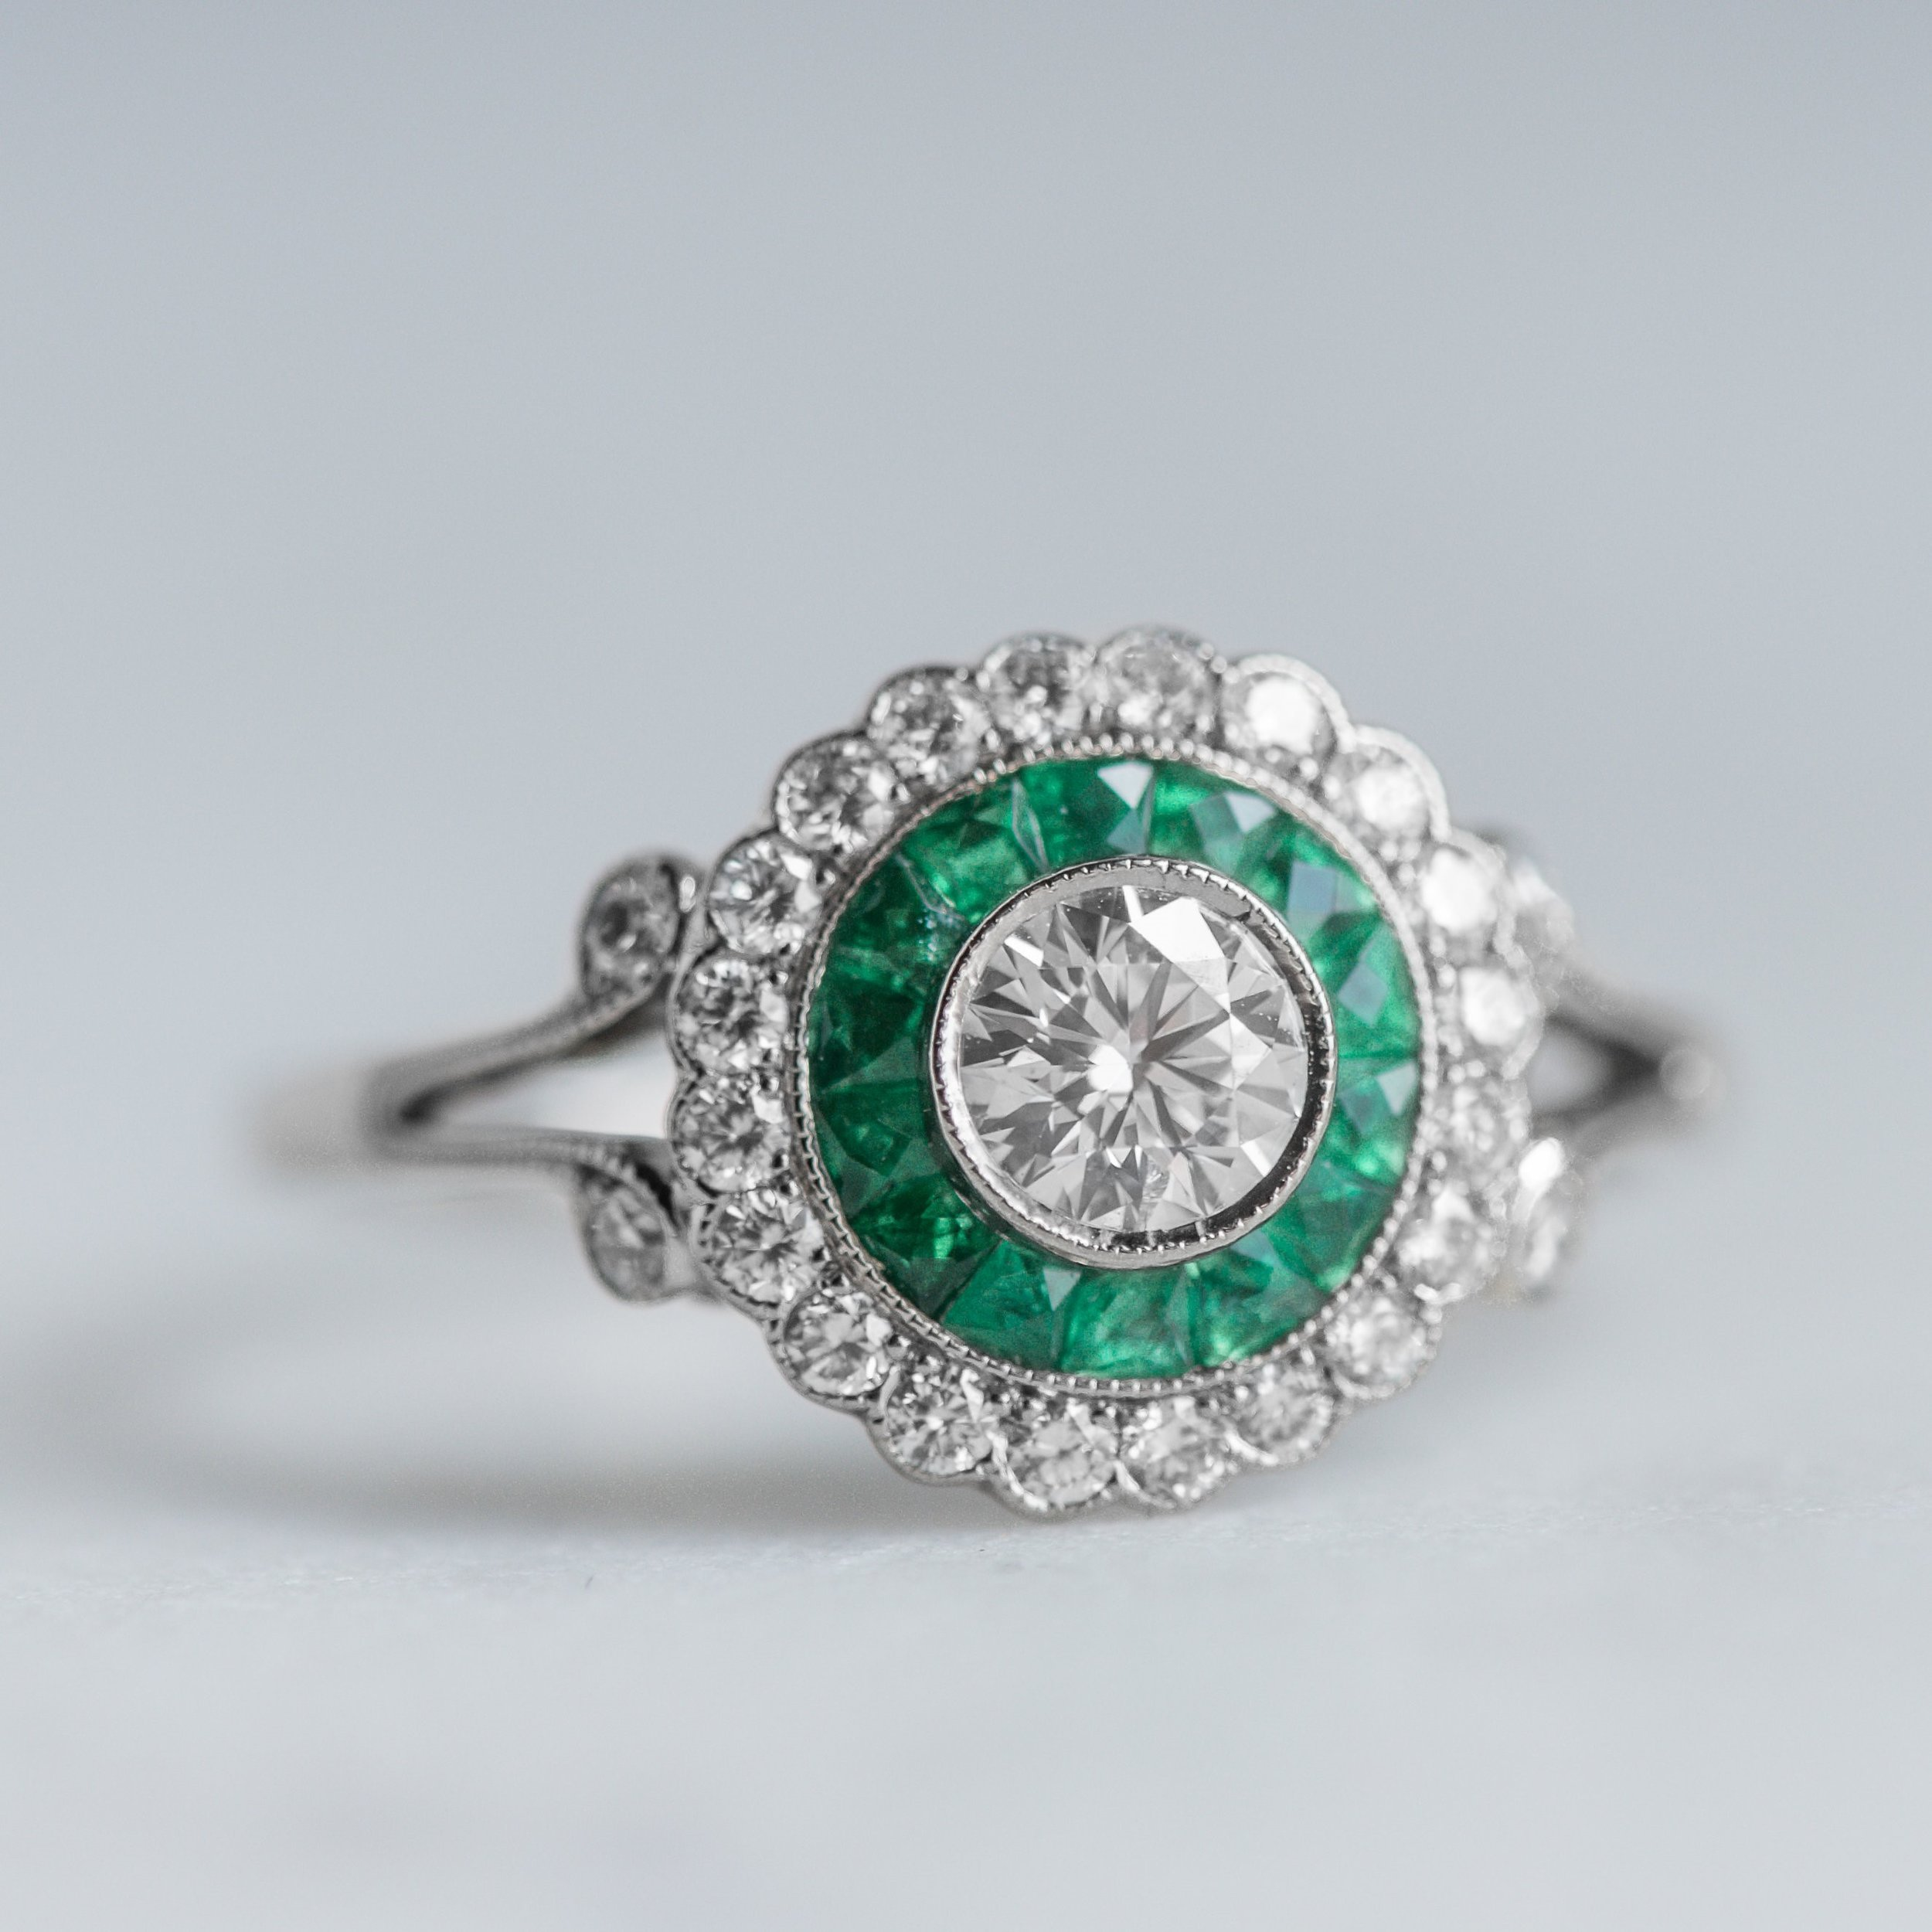 Any May babies out there who would love this fabulous emerald and diamond ring?! Shop this beauty  HERE .